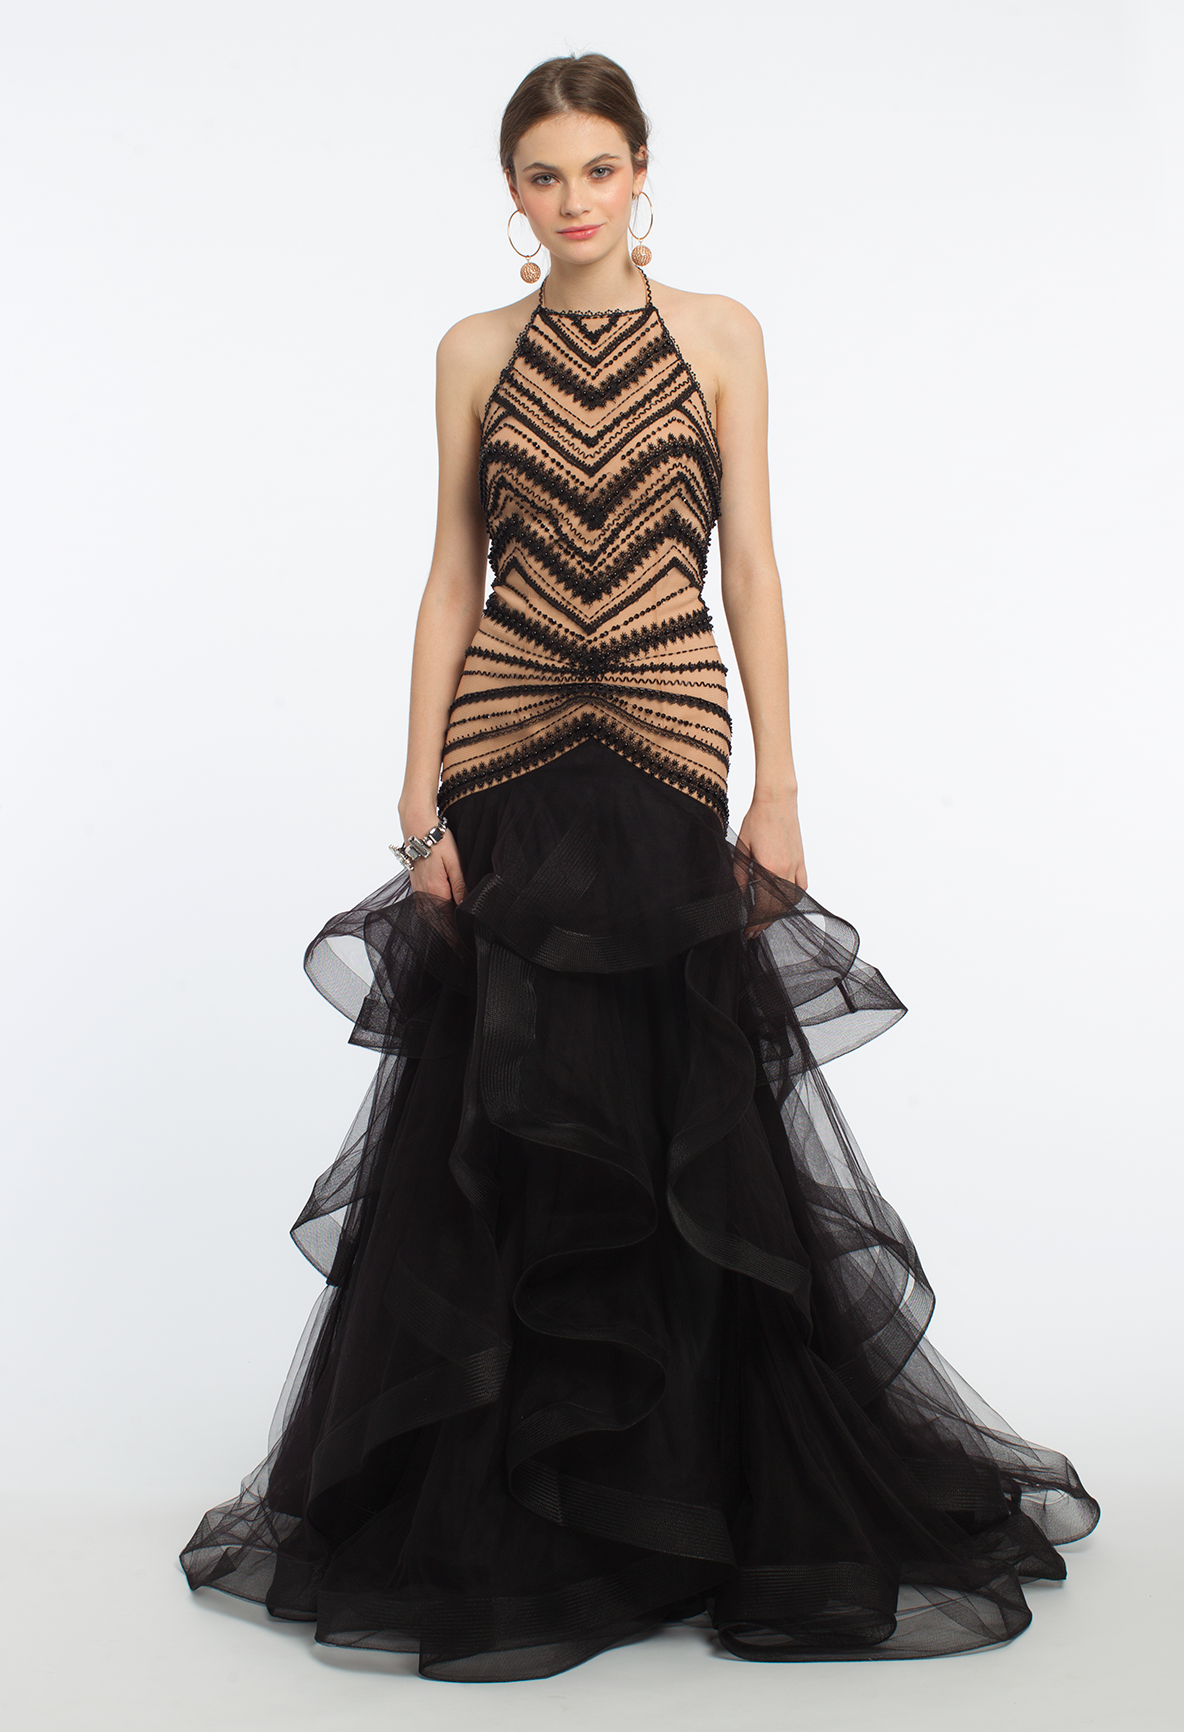 Make an extravagant entrance in this long evening dress the lace